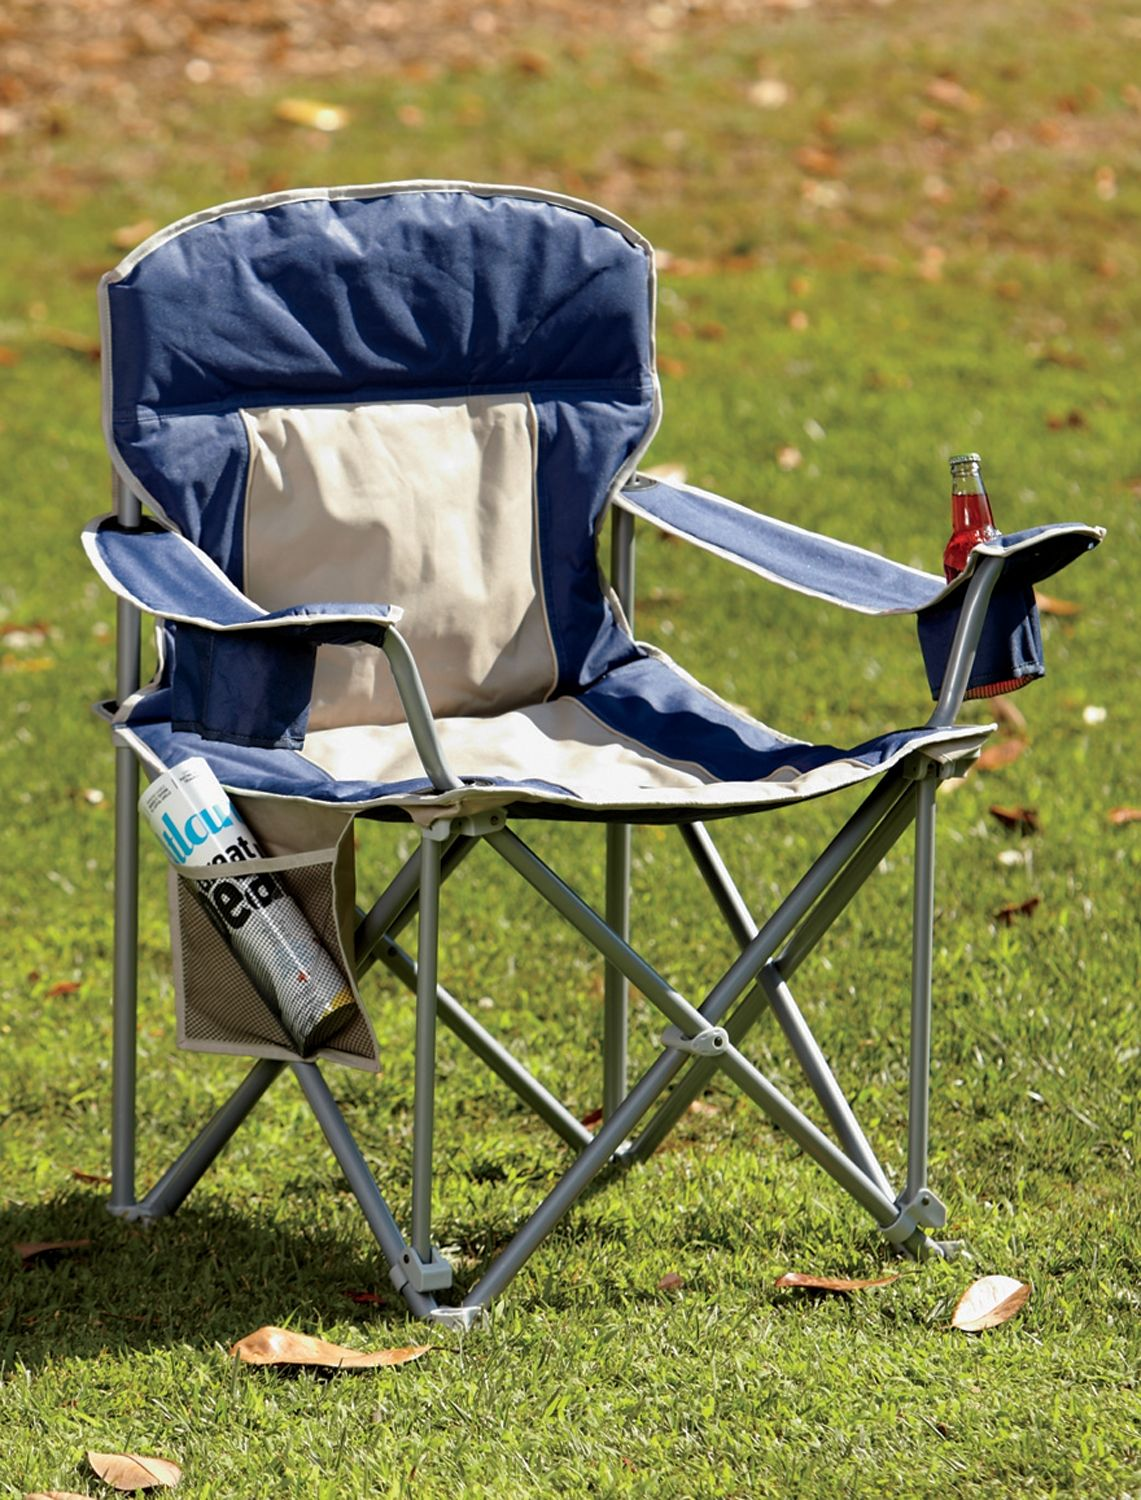 Heavy Duty Outdoor Chairs 500 Lb Capacity Heavy Duty Portable Chair Great Gift Ideas